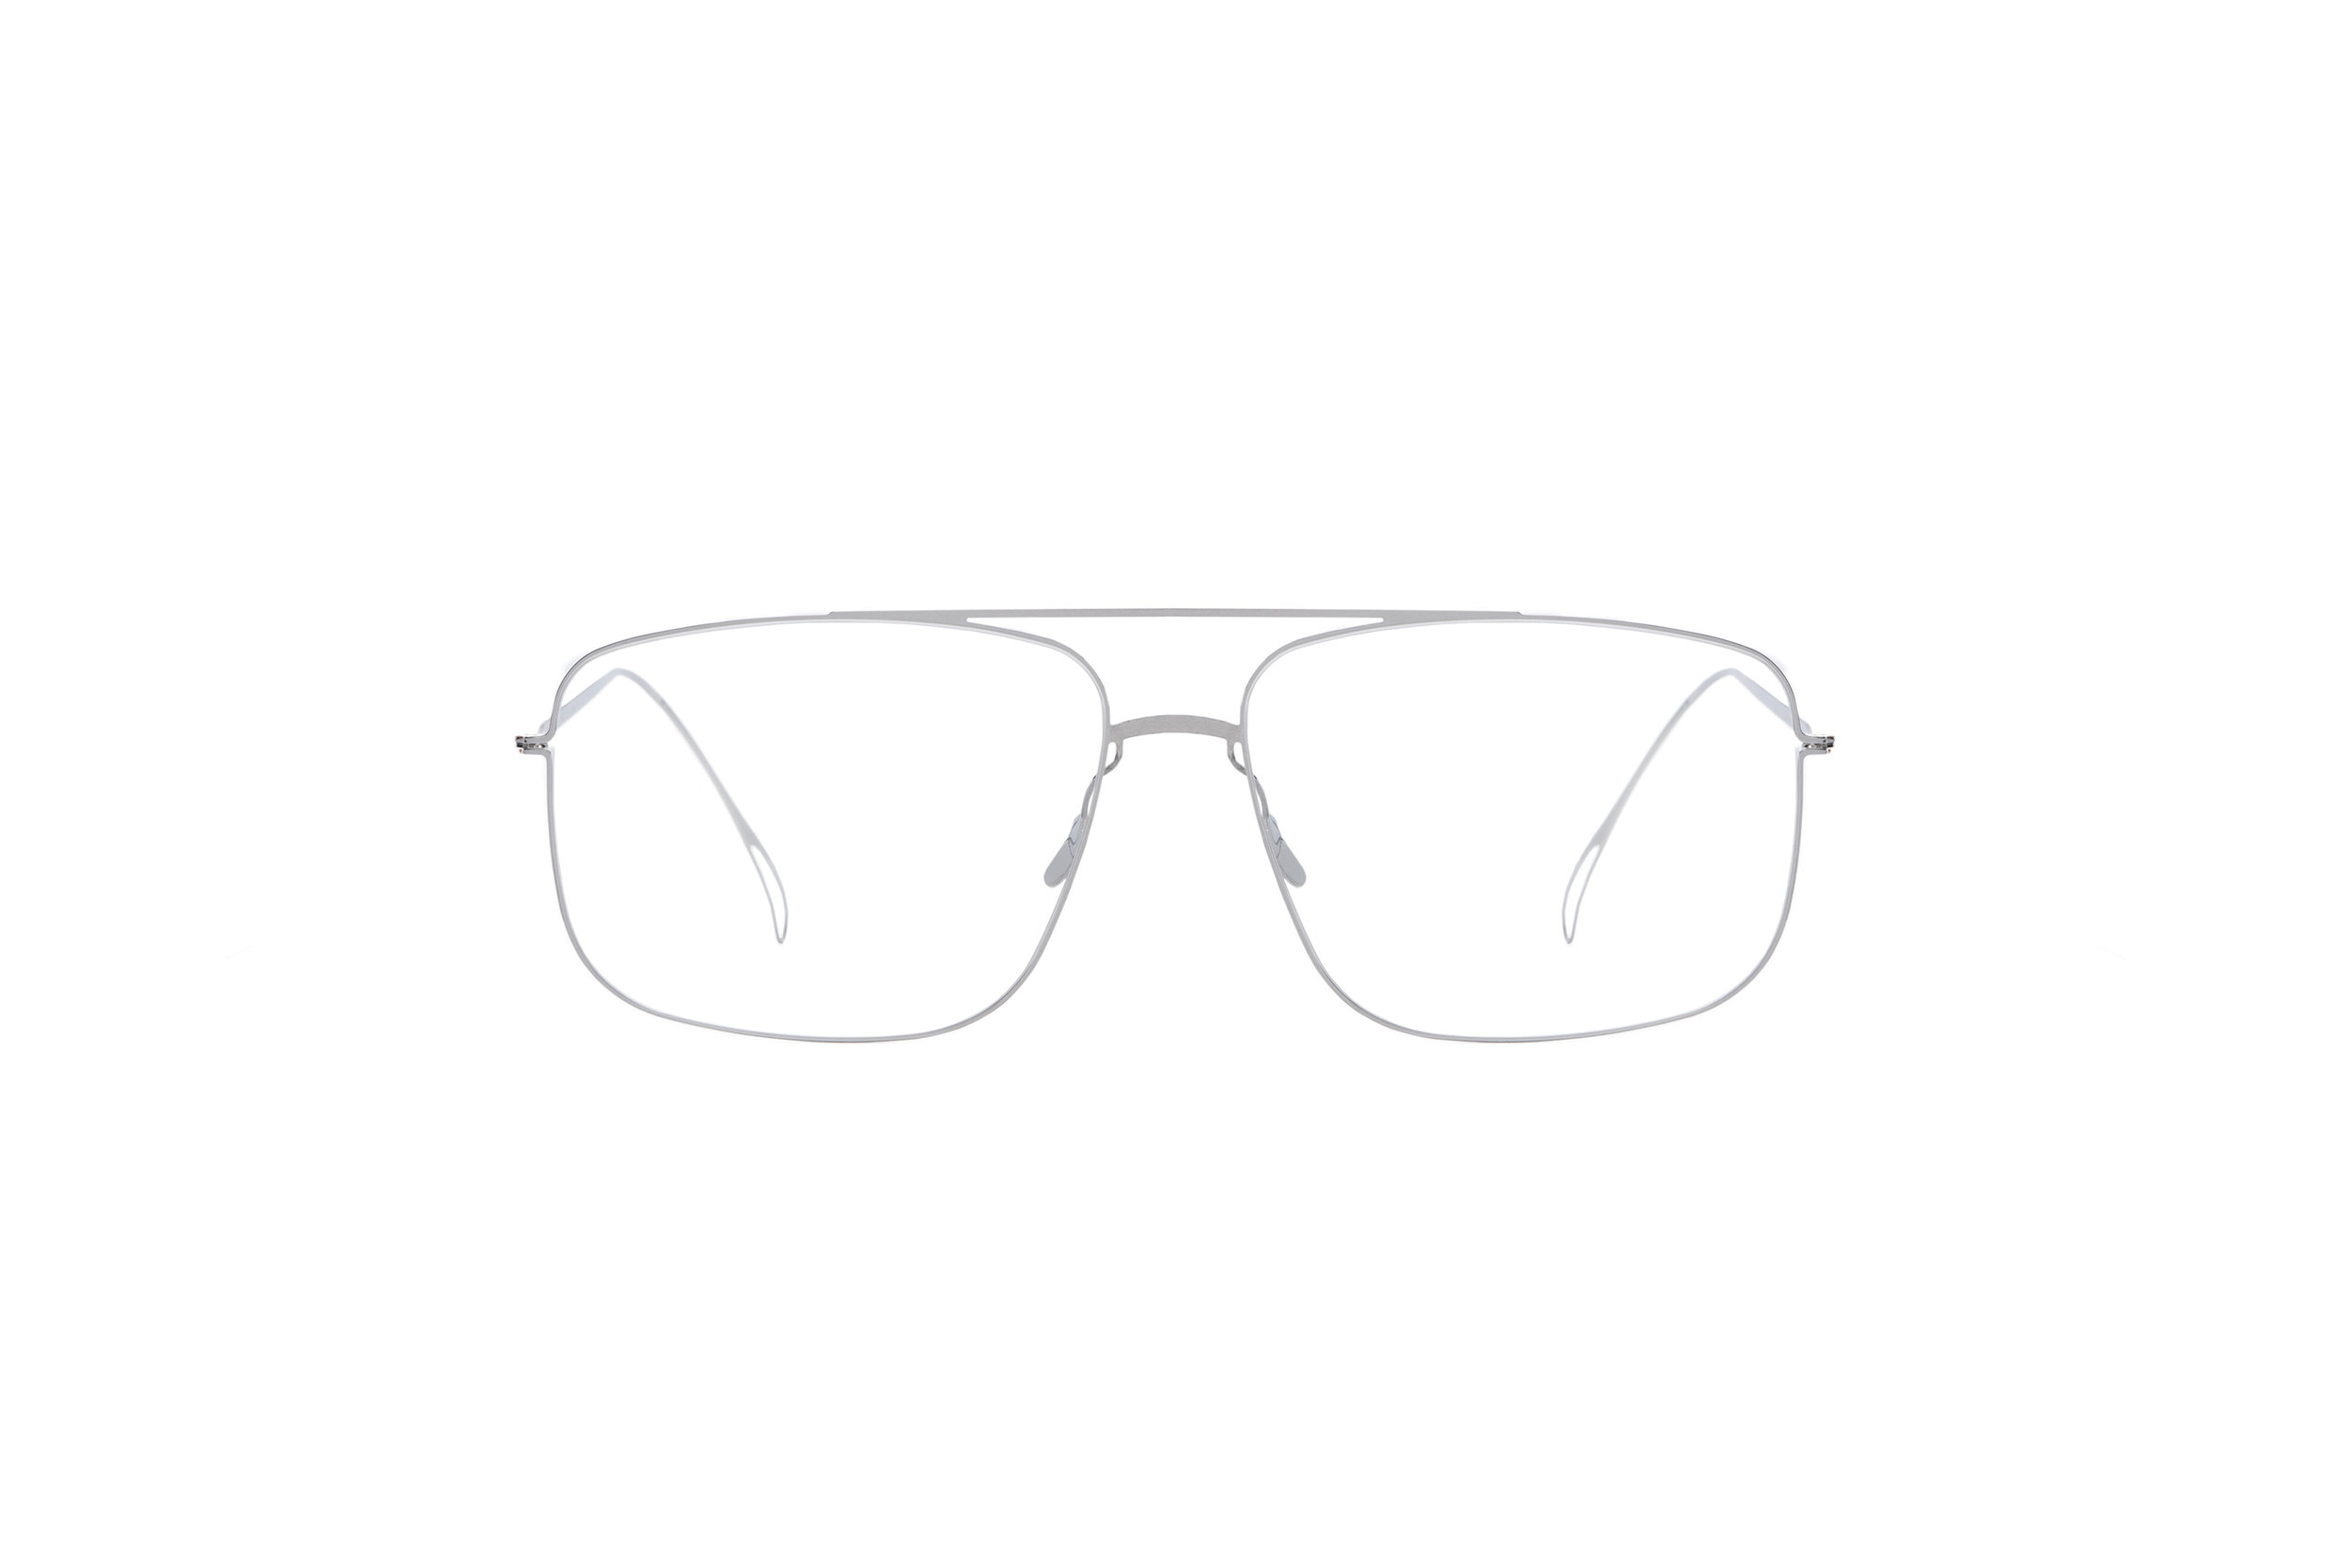 haffmans_neumeister_scout_airstream_clear_ultralight_eyeglasses_front_102442.jpg